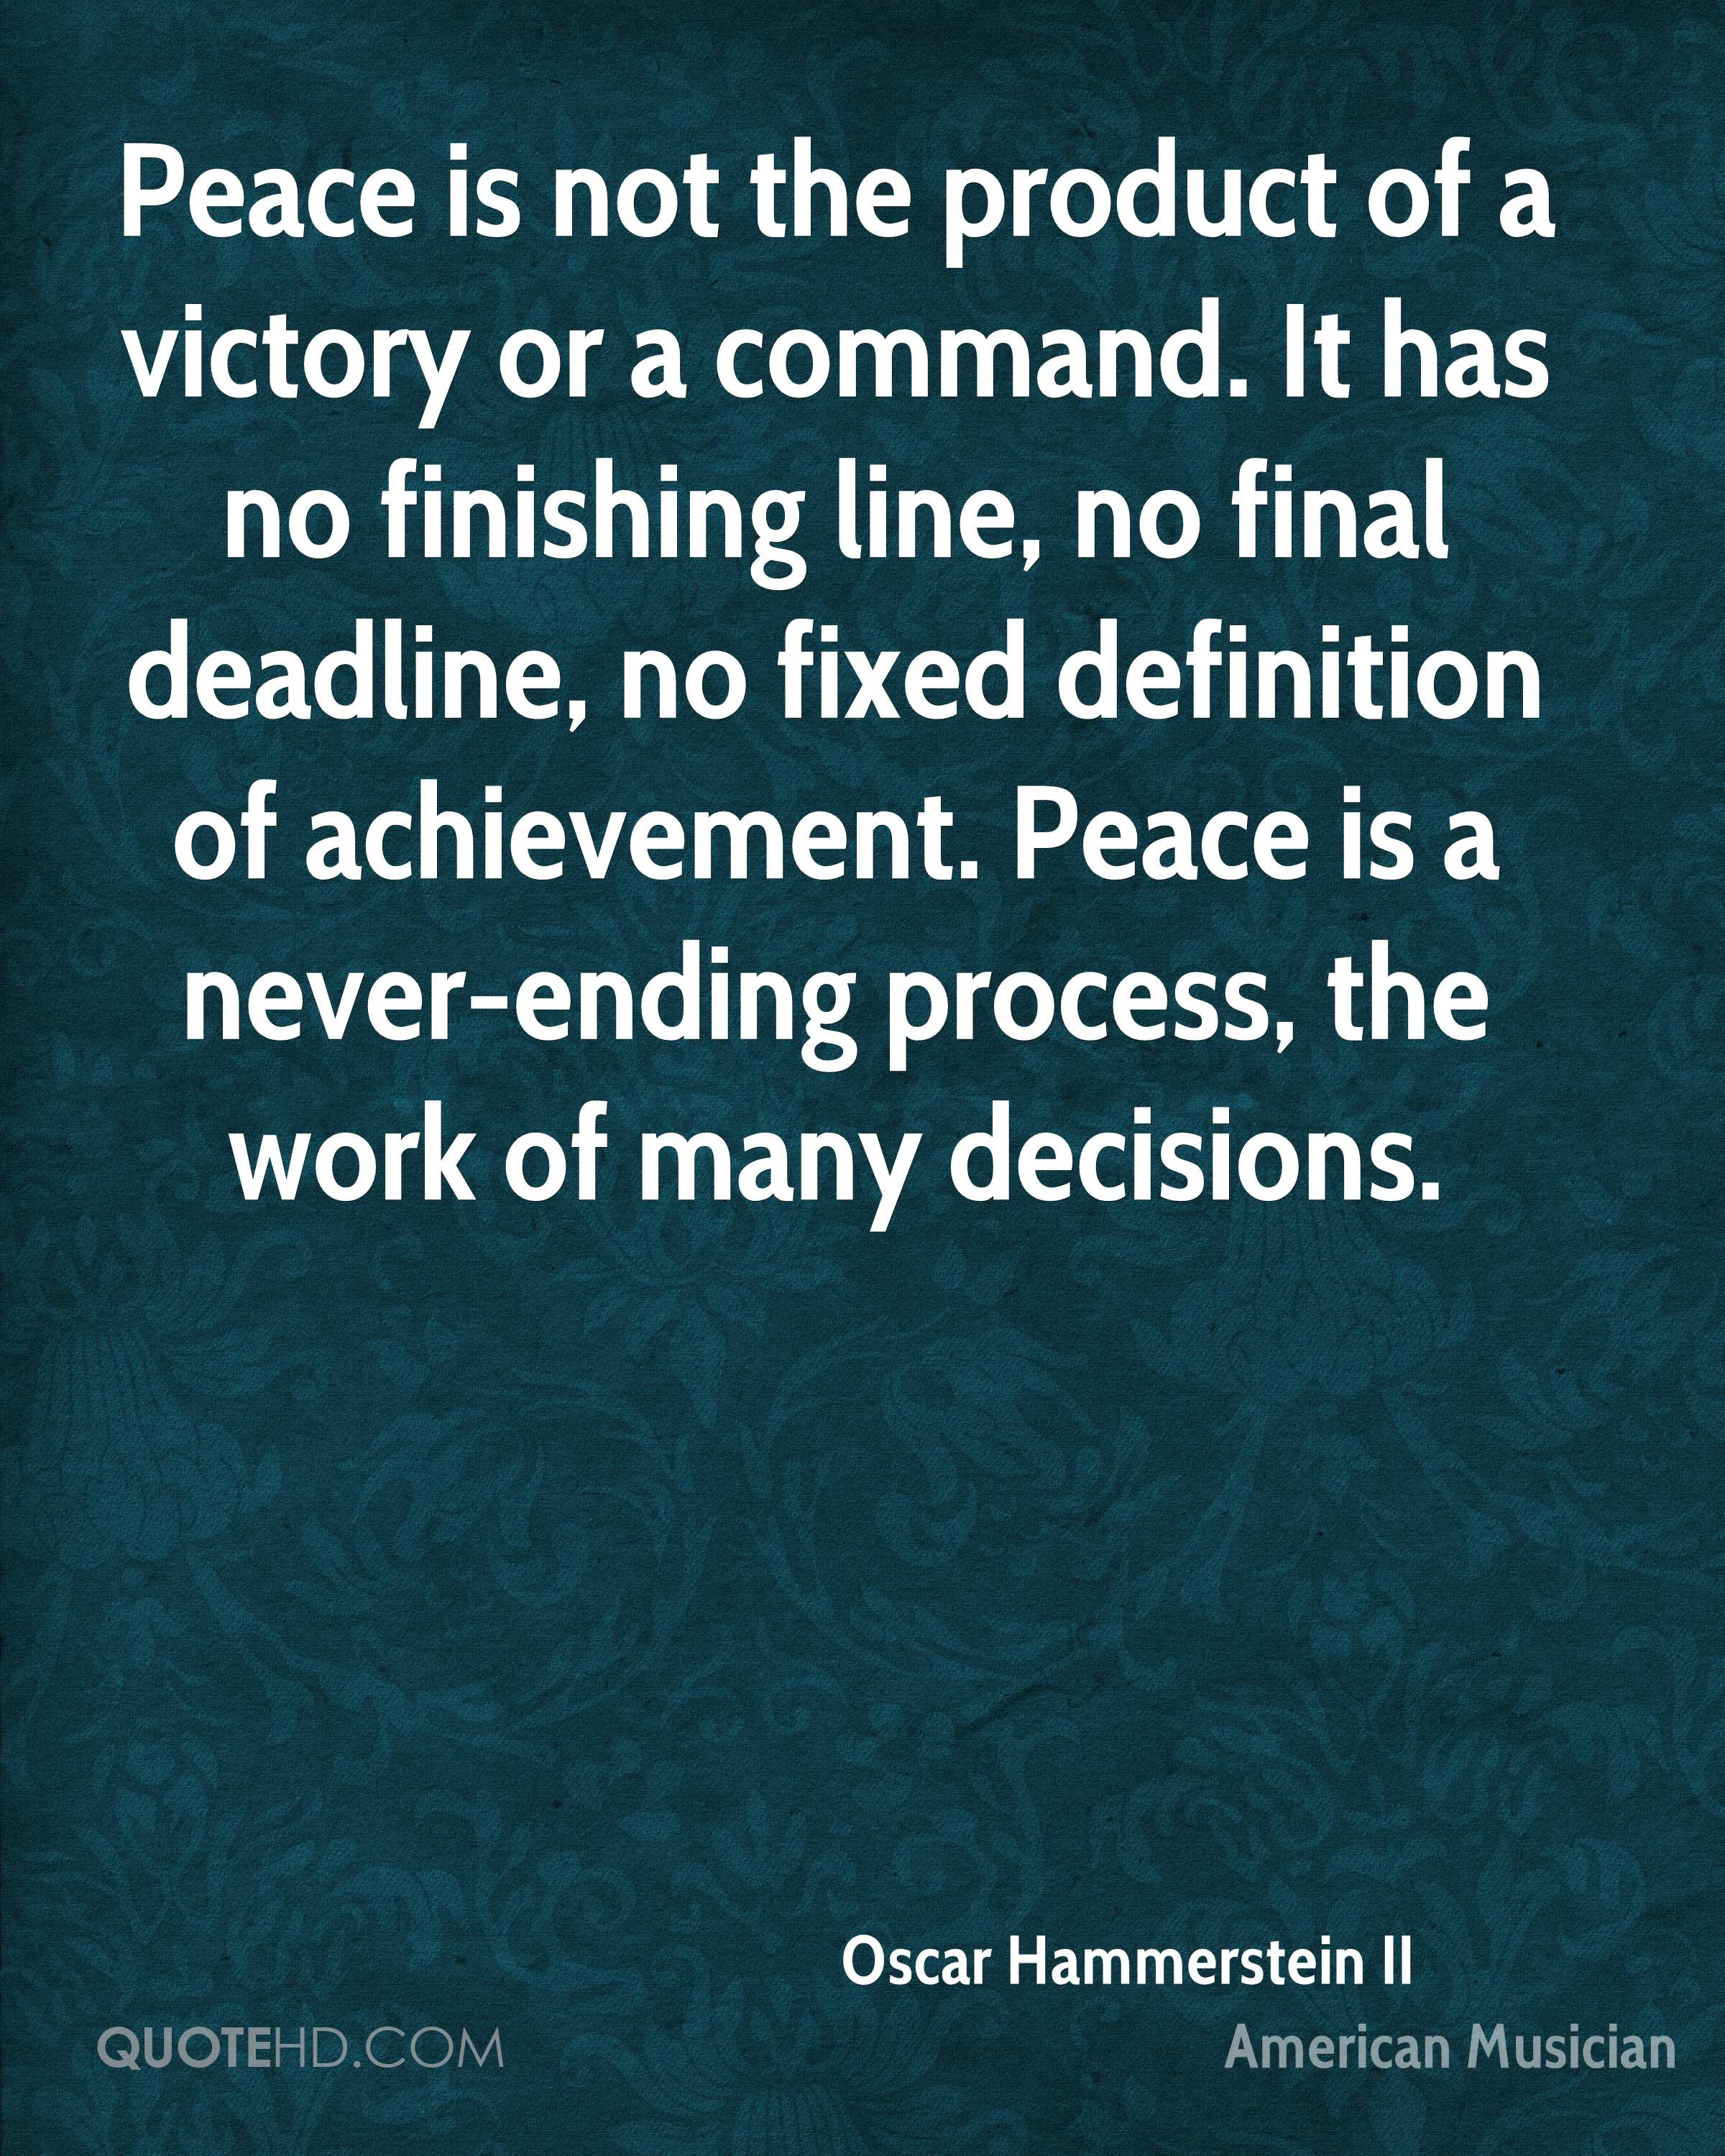 Peace is not the product of a victory or a command. It has no finishing line, no final deadline, no fixed definition of achievement. Peace is a never-ending process, the work of many decisions.